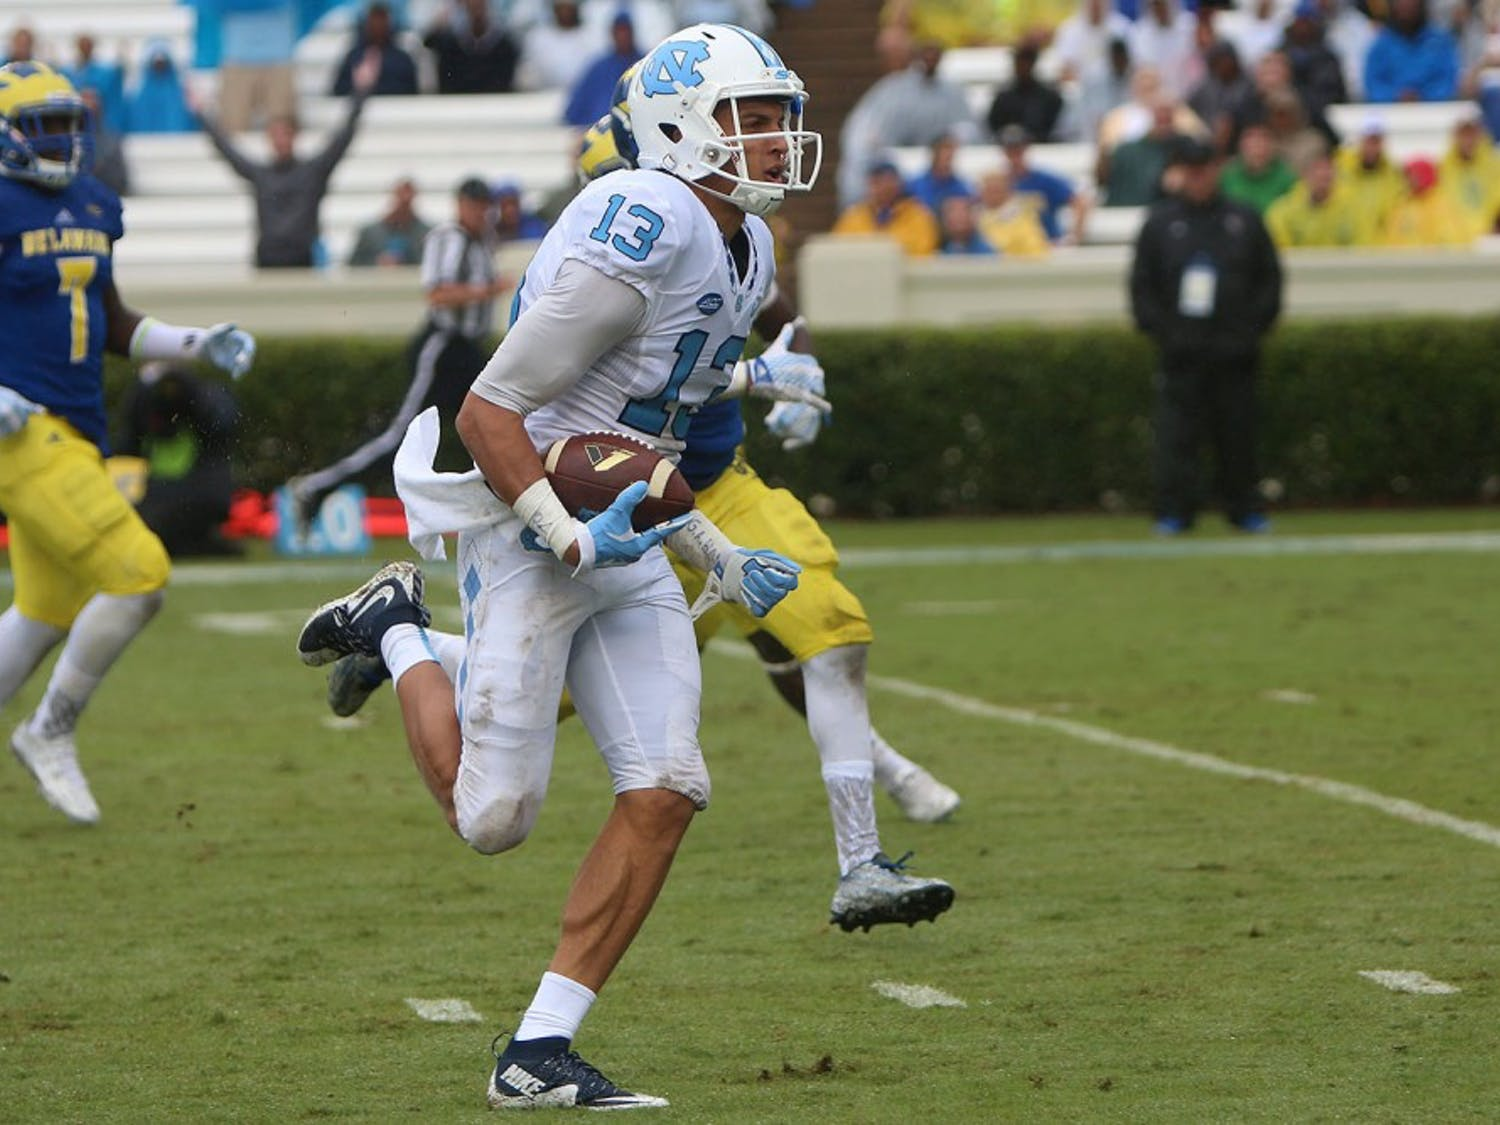 Wide receiver Mack Hollins (13) runs toward the end zone for a touchdown off of a 64yard pass from Mitch Trubisky.